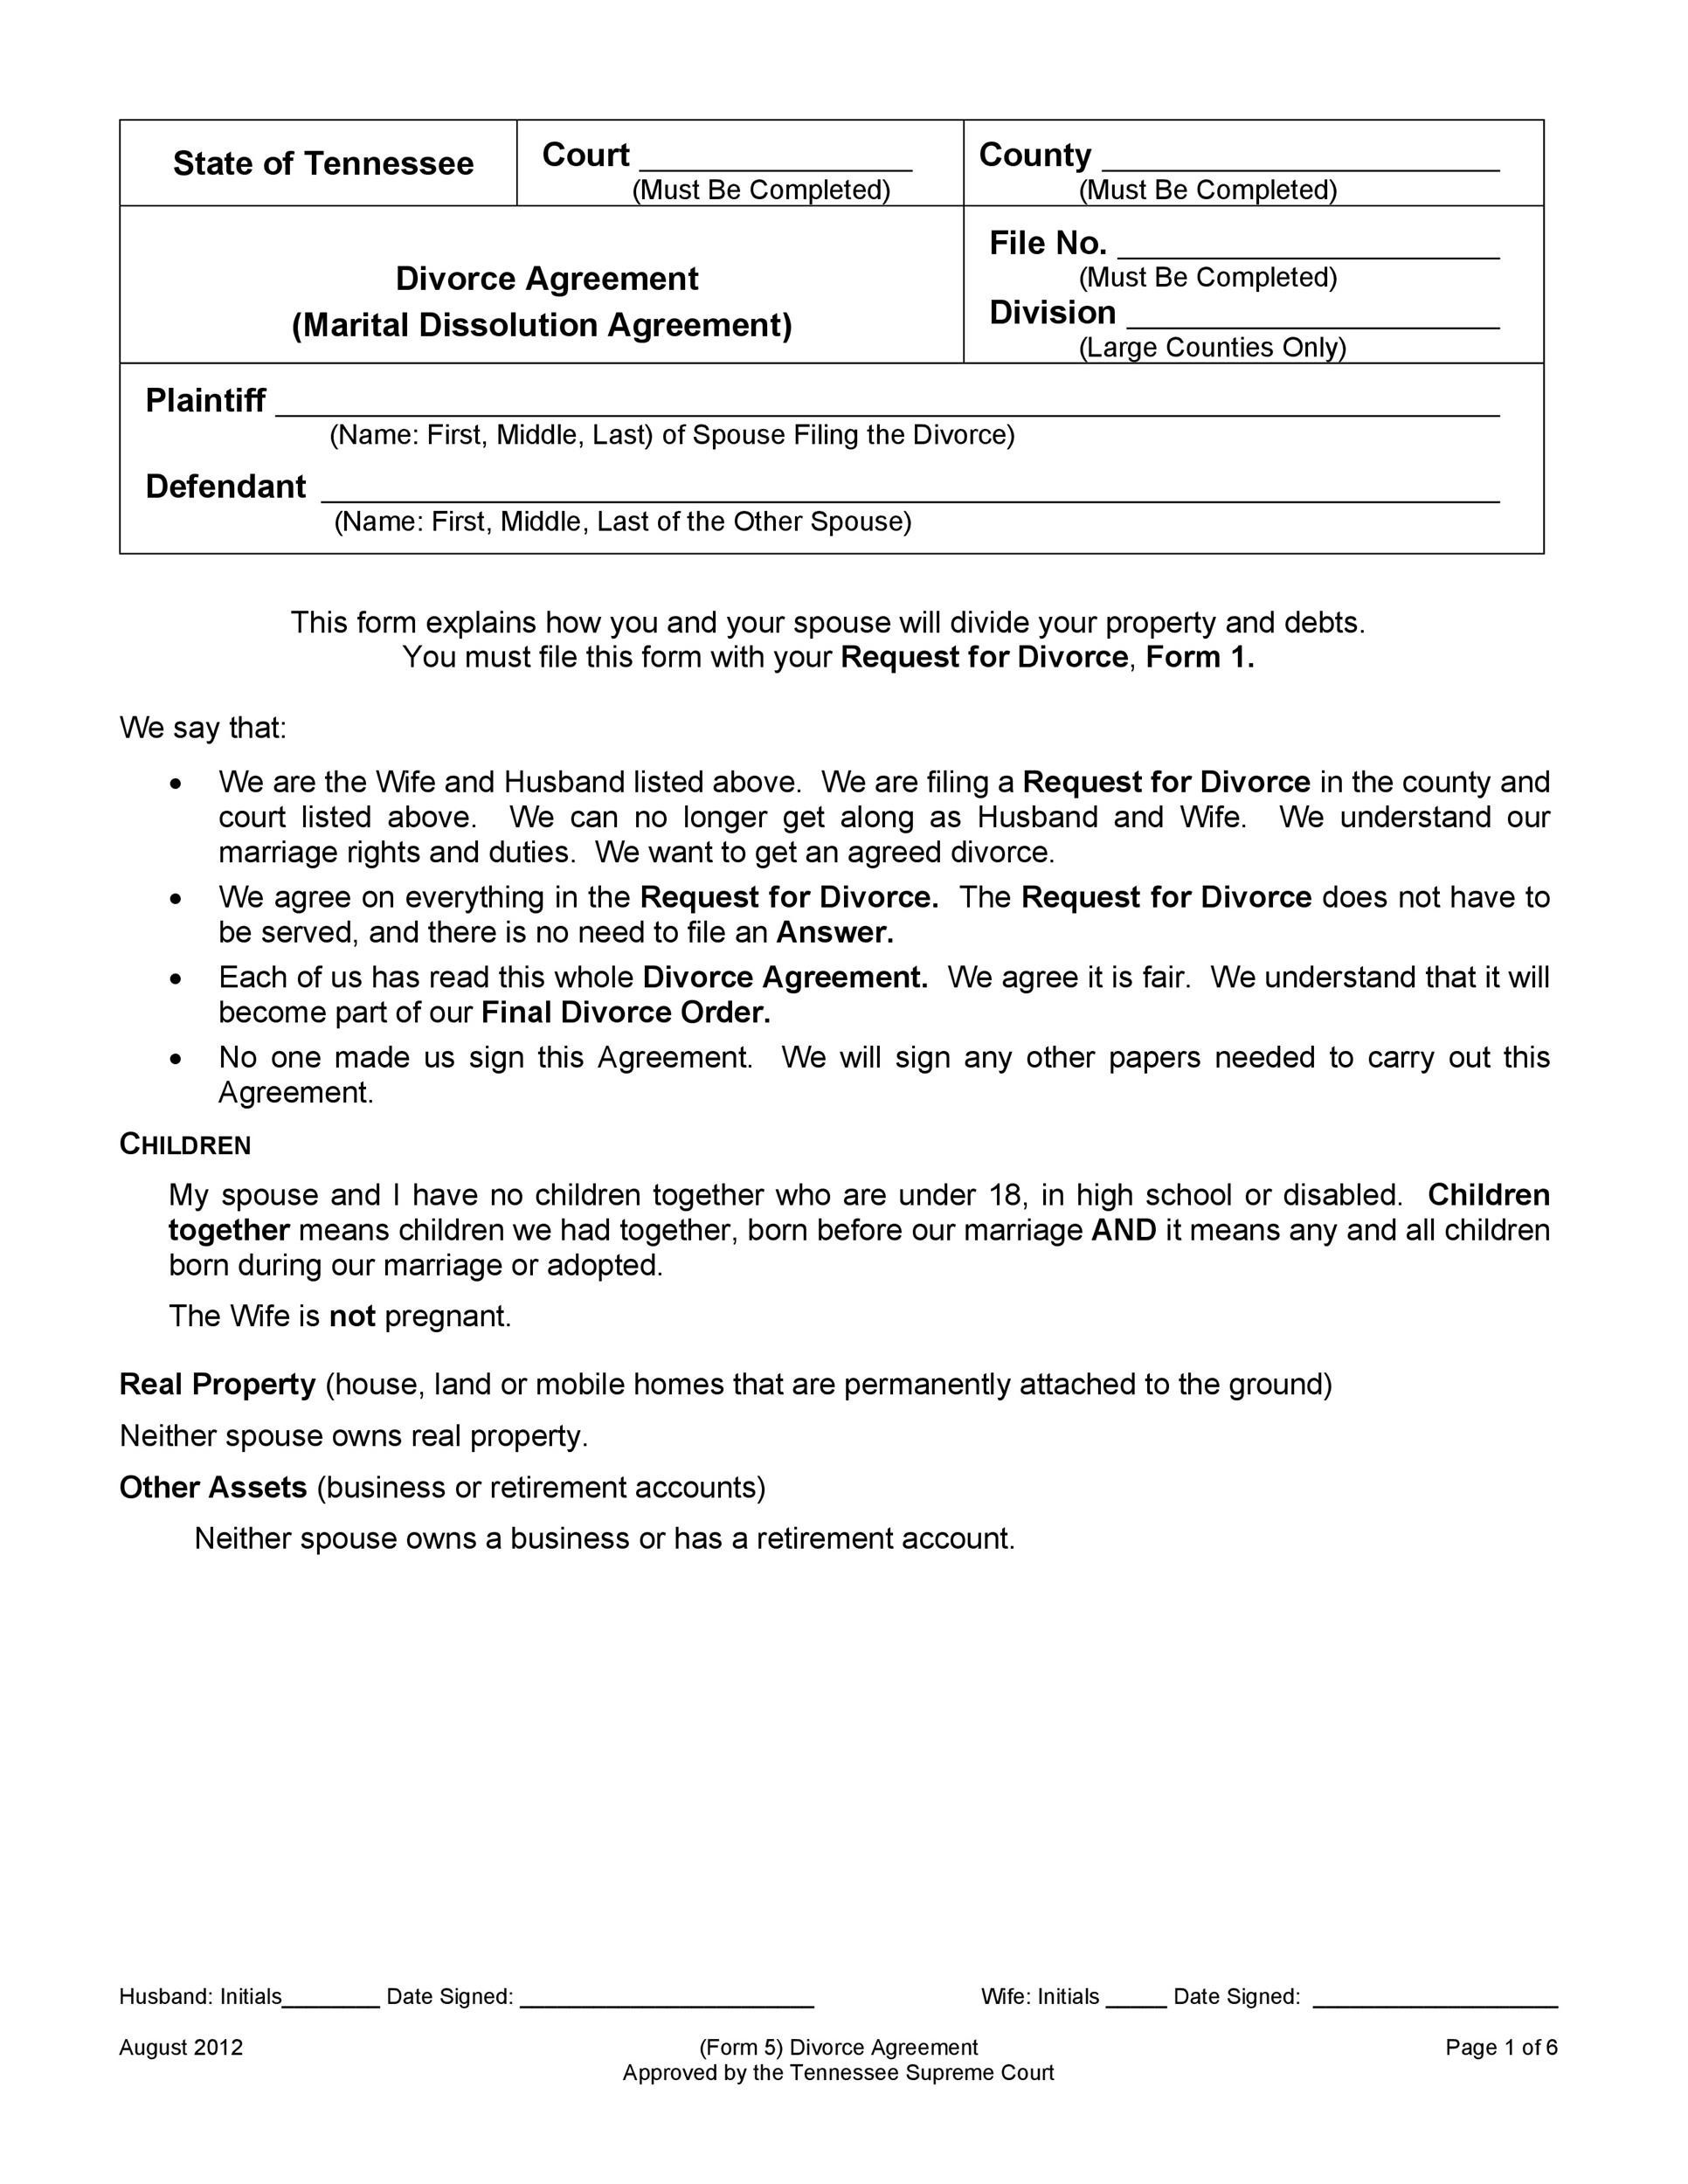 divorce agreement example